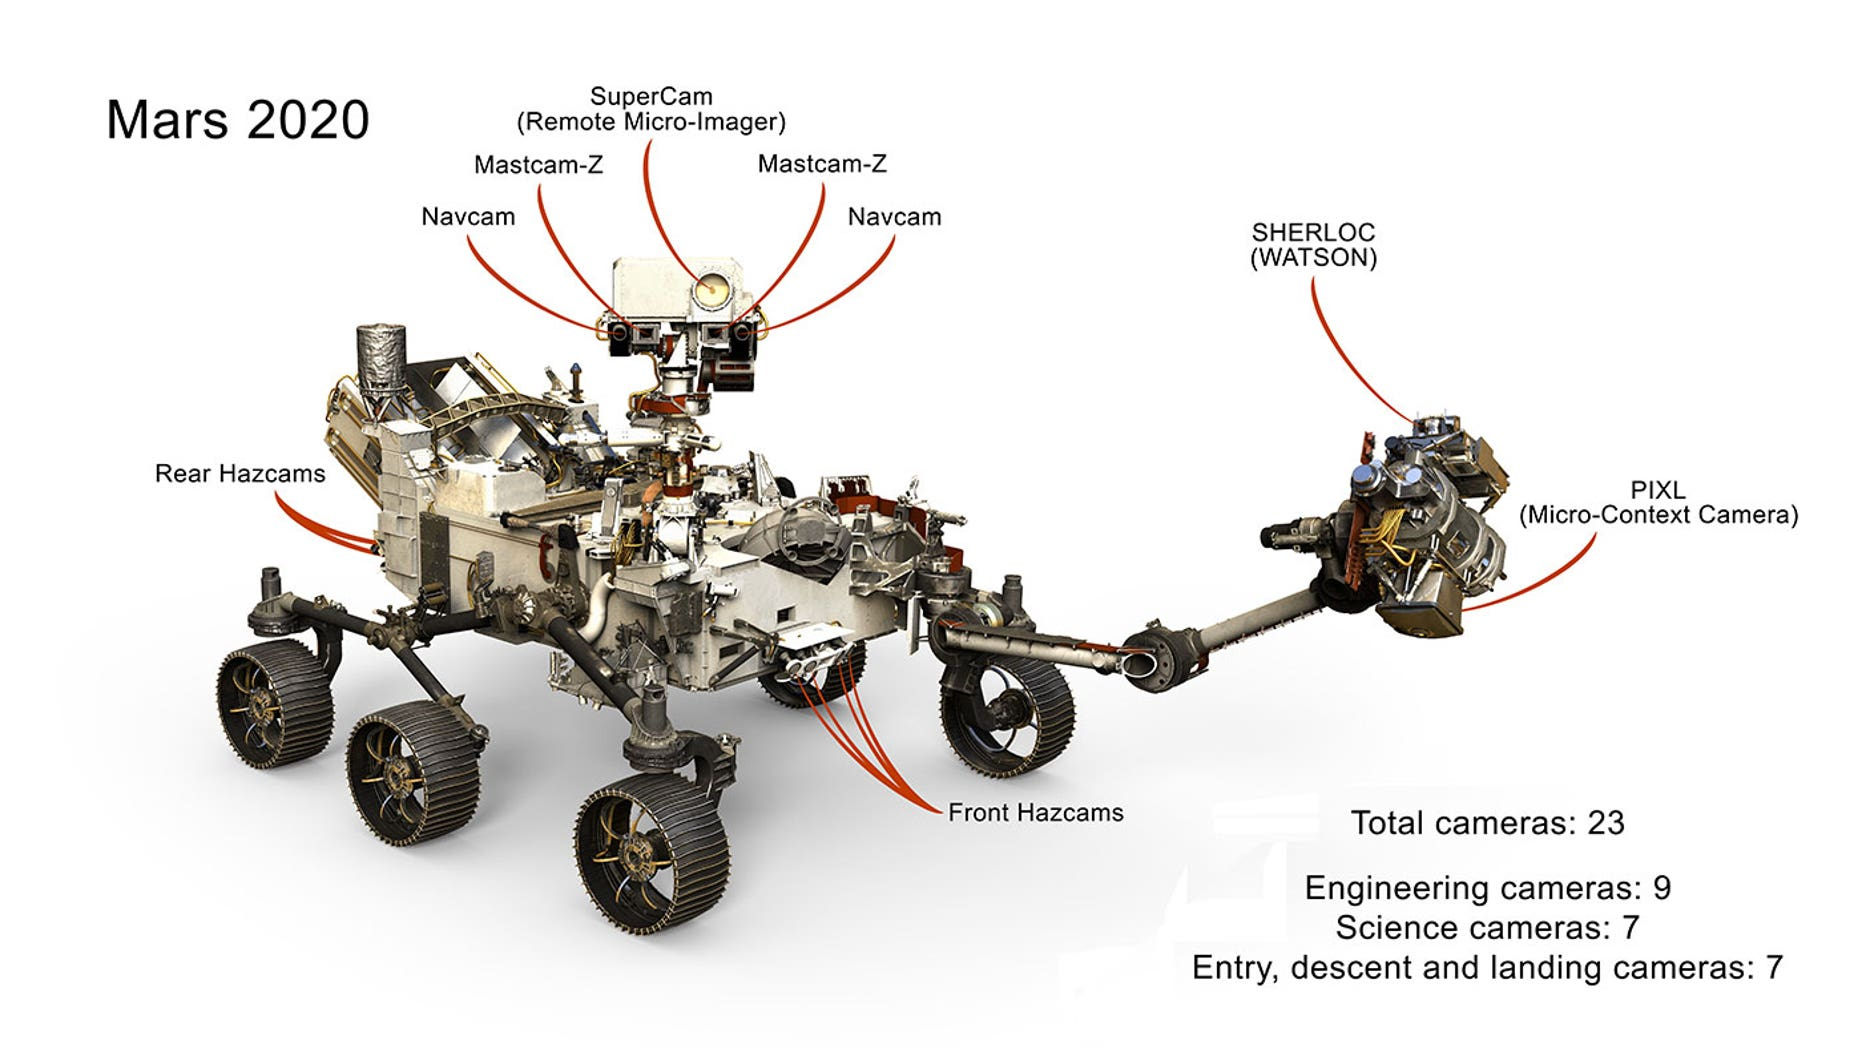 A selection of the 23 cameras on NASA's 2020 Mars rover. Many are improved versions of the cameras on the Curiosity rover, with a few new additions as well.